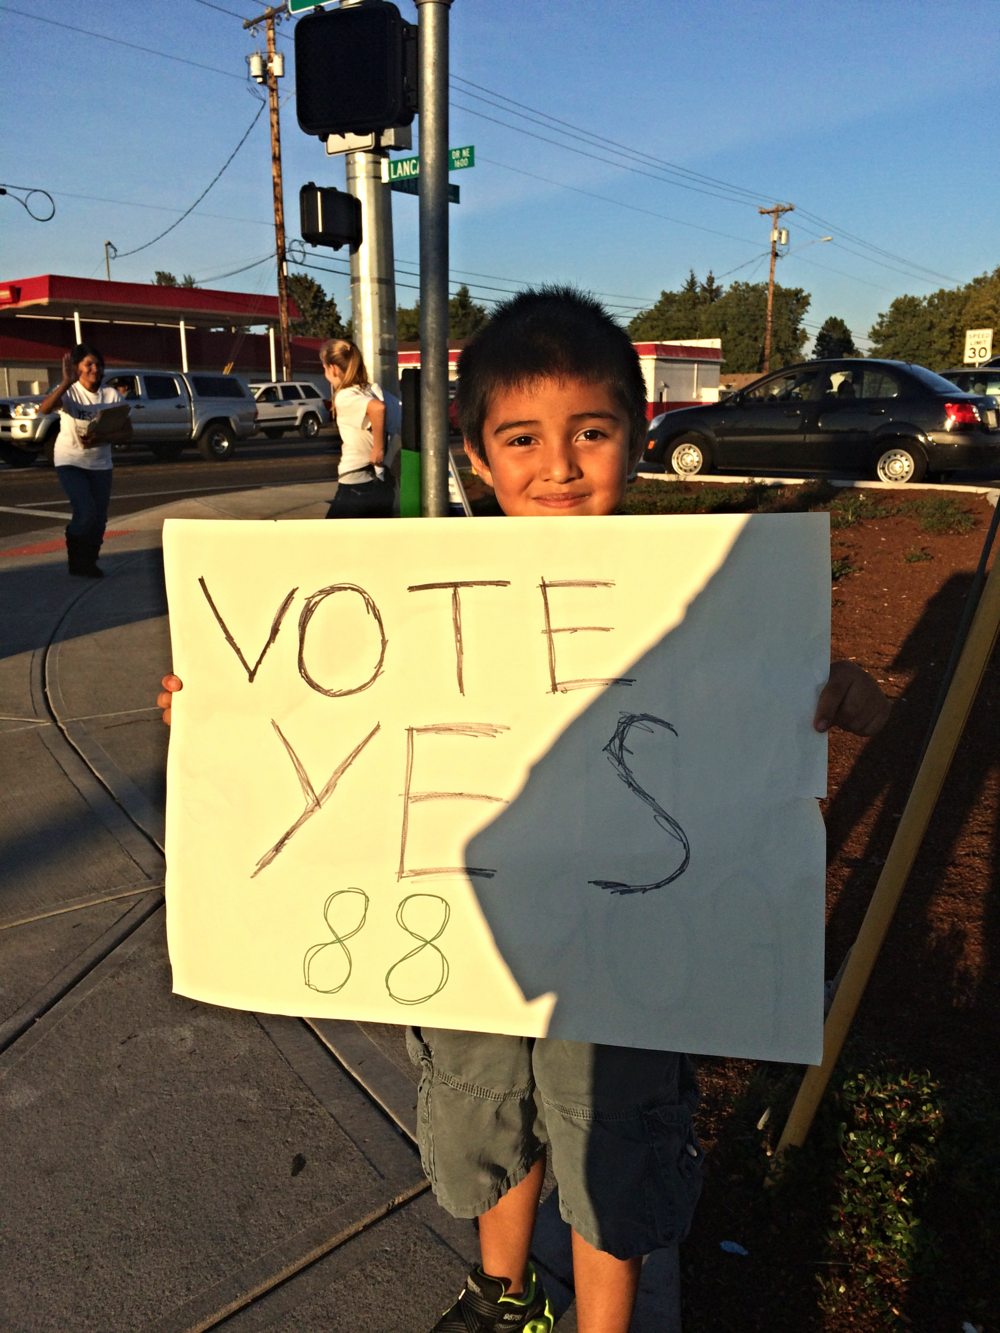 A little boy holding up a sign in support of Measure 88, which would have instituted Driver Cards for undocumented immigrants.